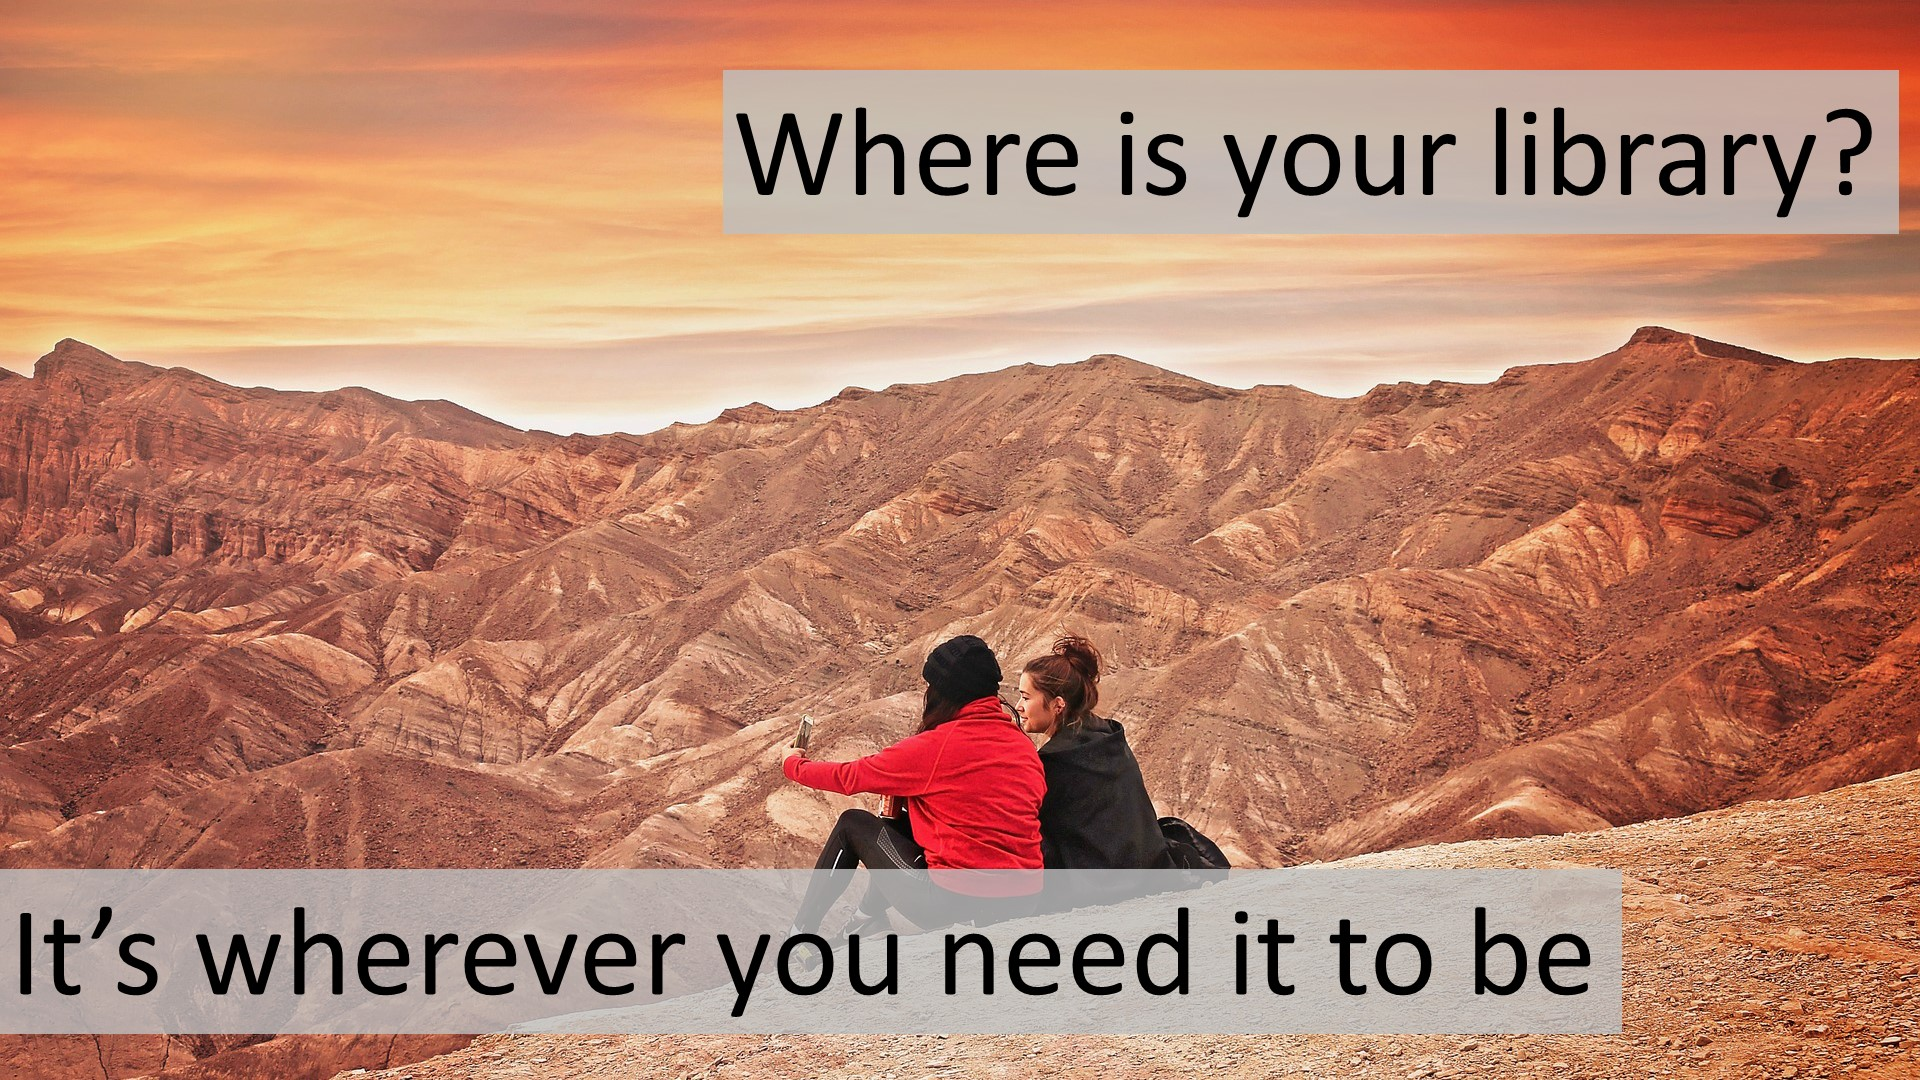 It's wherever you need it to be